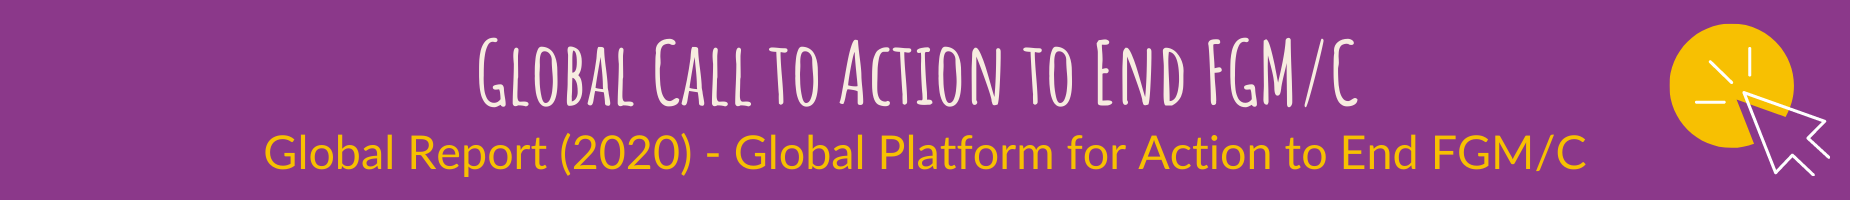 Global Call to Action to End FGM/C (Global Platform for Action to End FGM/C) - Global Report 2020